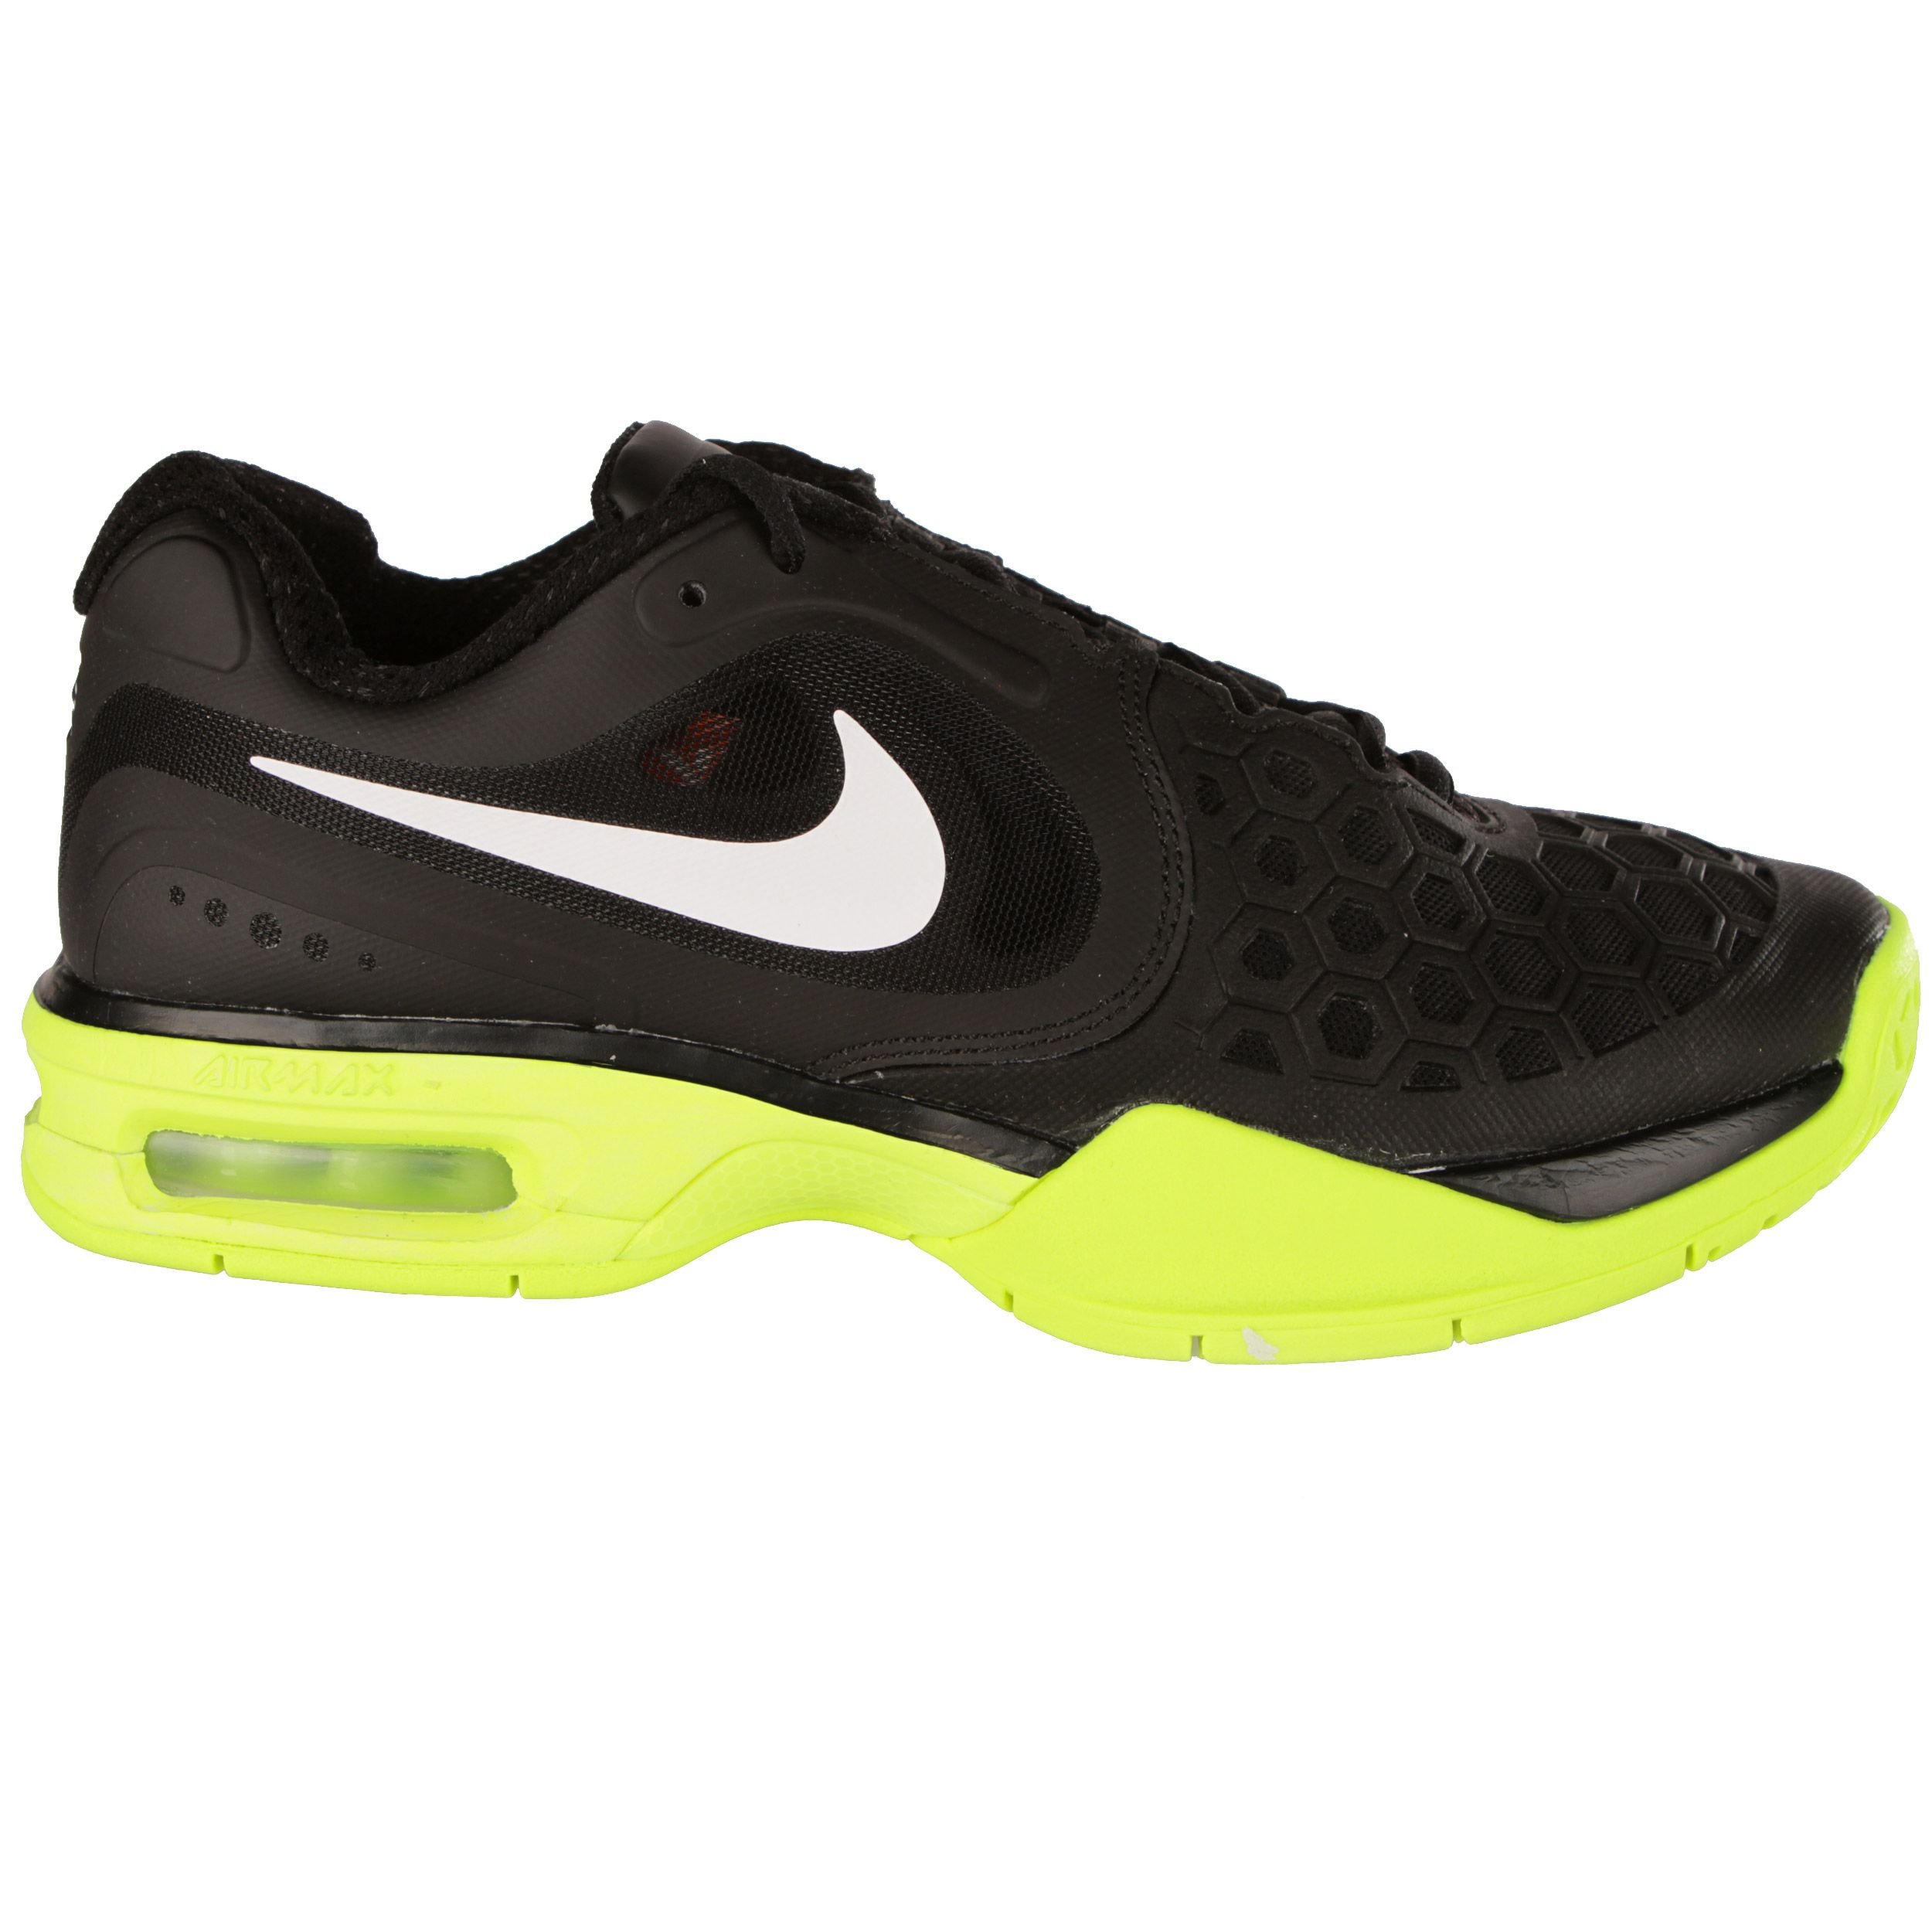 innovative design 34ca8 2fbf1 ... top quality 6 7 10 12 nike rafael nadal air max courtballistec 4.3 90  726a0 1e643 ...